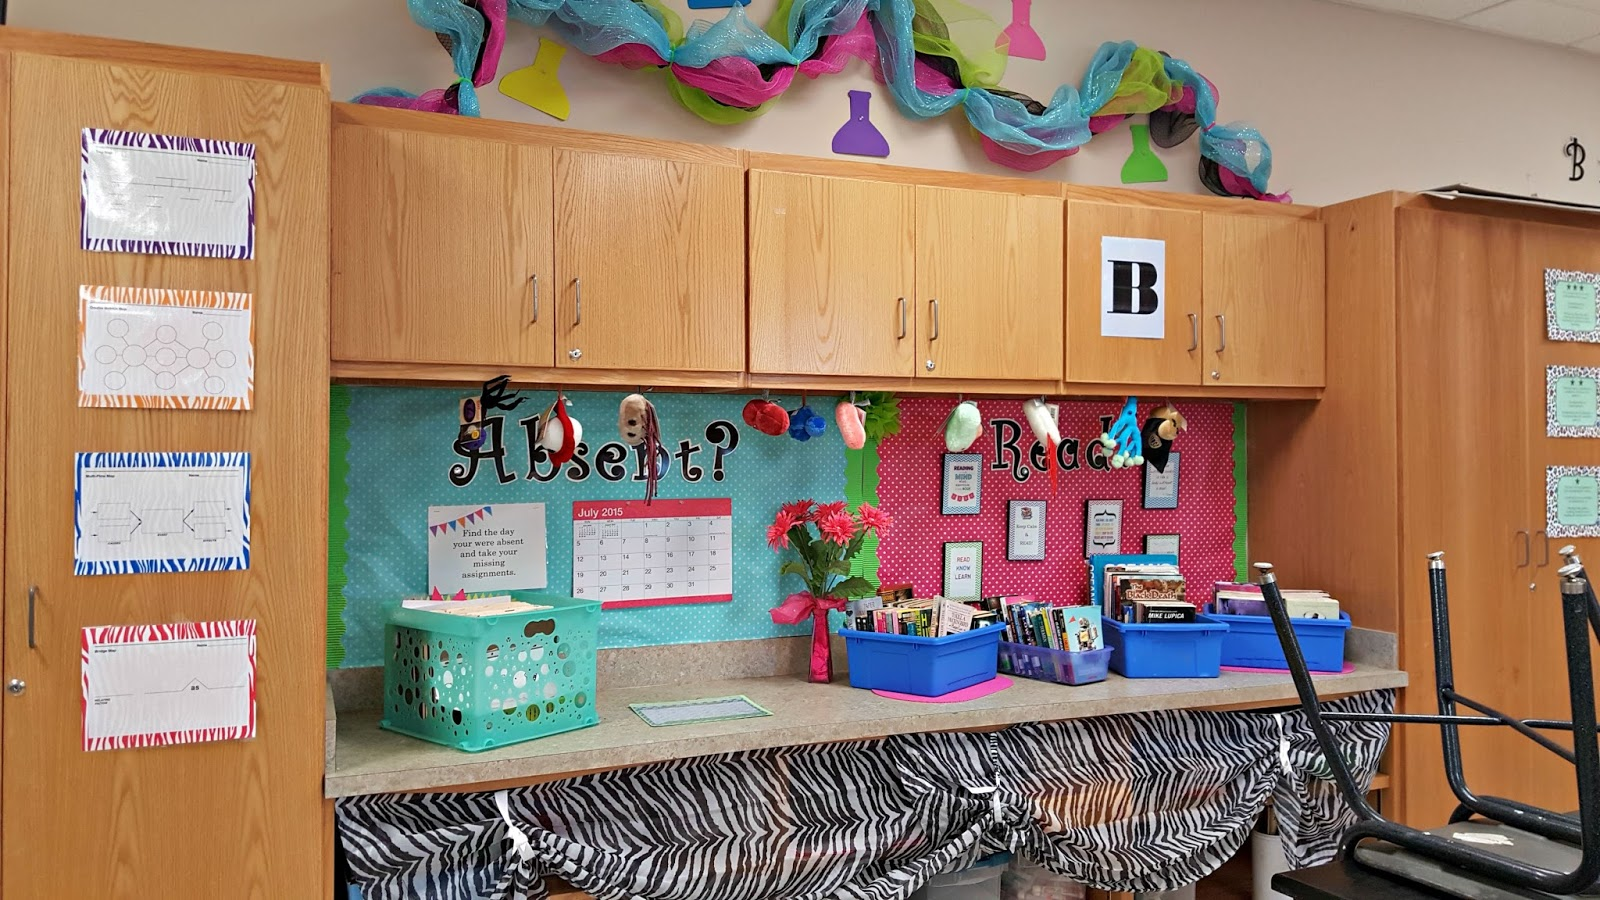 Middle School Science Classroom Decorations : Middle school science classroom decorations pixshark